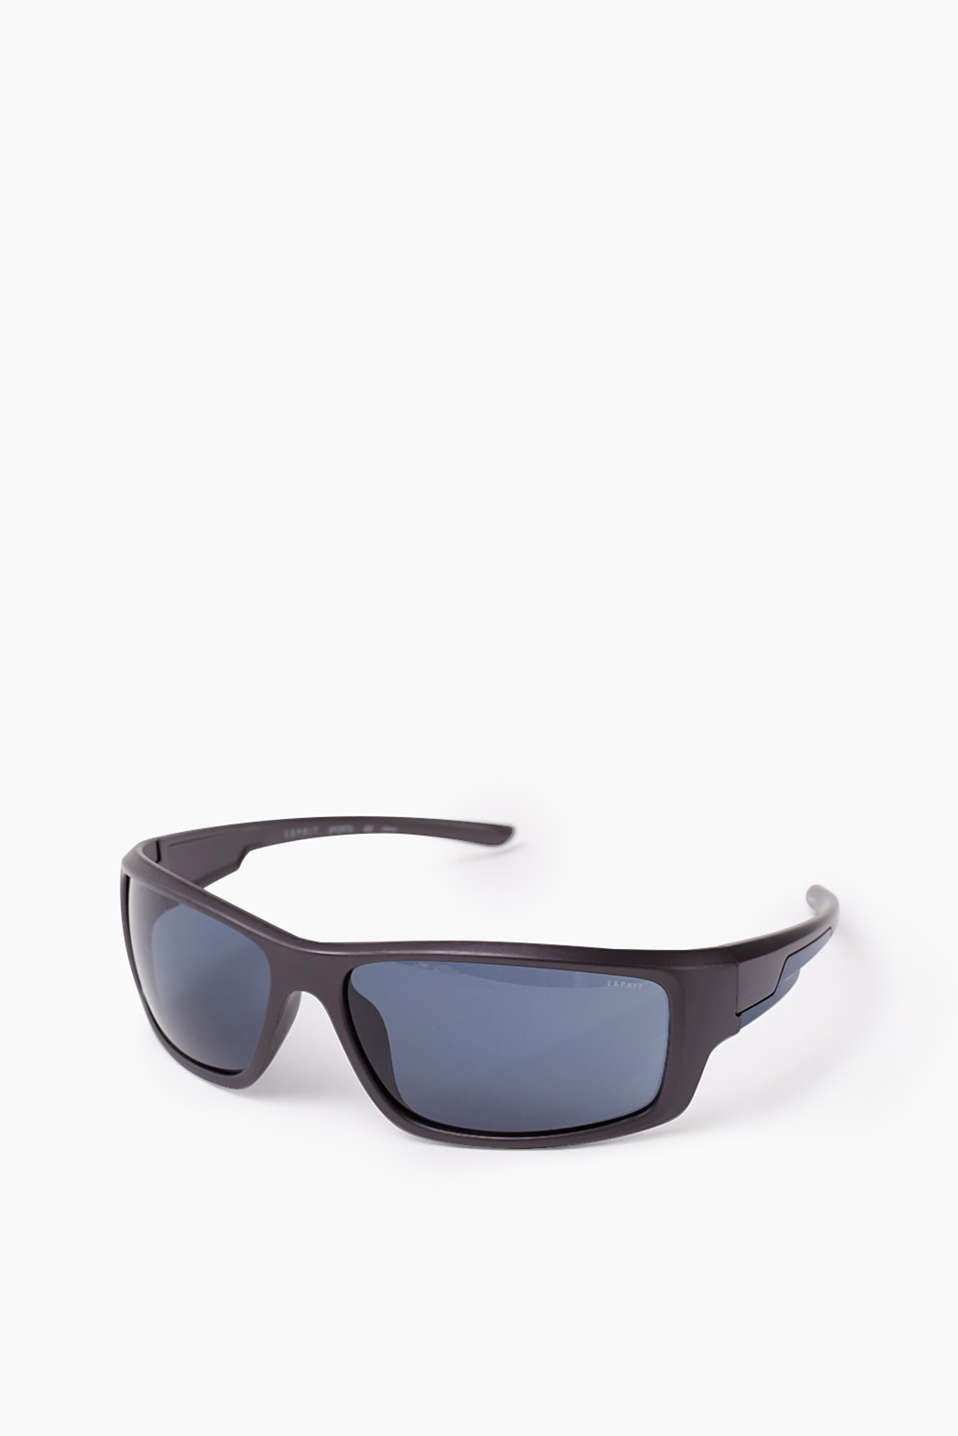 These lightweight, unisex sunglasses are great for active sports in a wrap-around look with trims in a contrasting colour